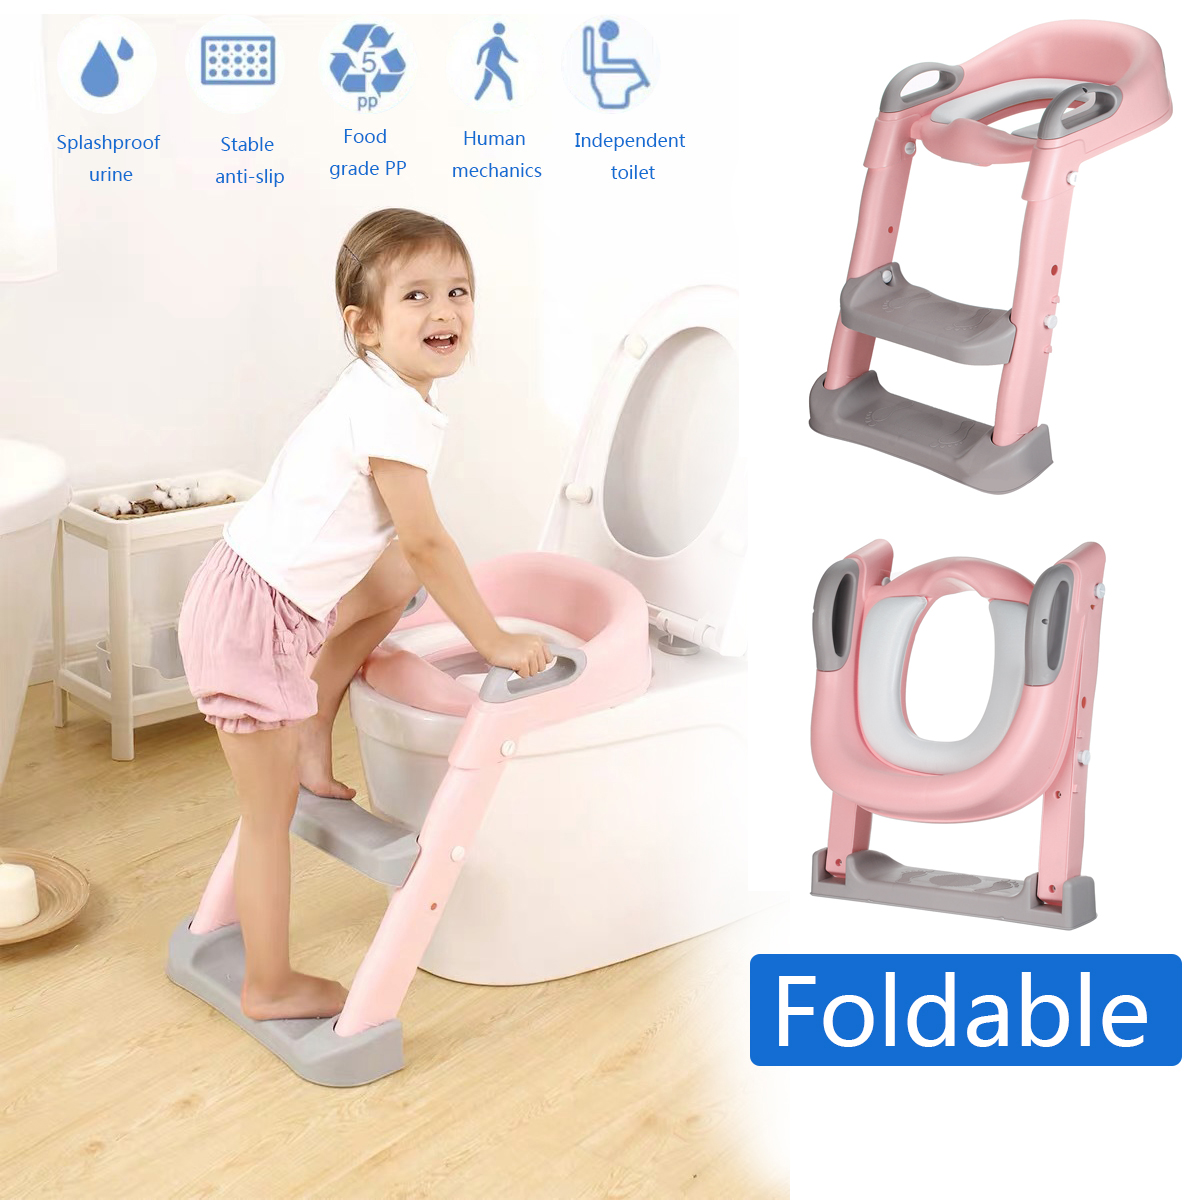 Foldable Baby Potty Infant Kids Toilet Chair Portable Training Seat with No-Slip Ladder Step Stool for Boys Girls Pink Amazing Tour Potty Toddler Toilet Seat Kids Chair